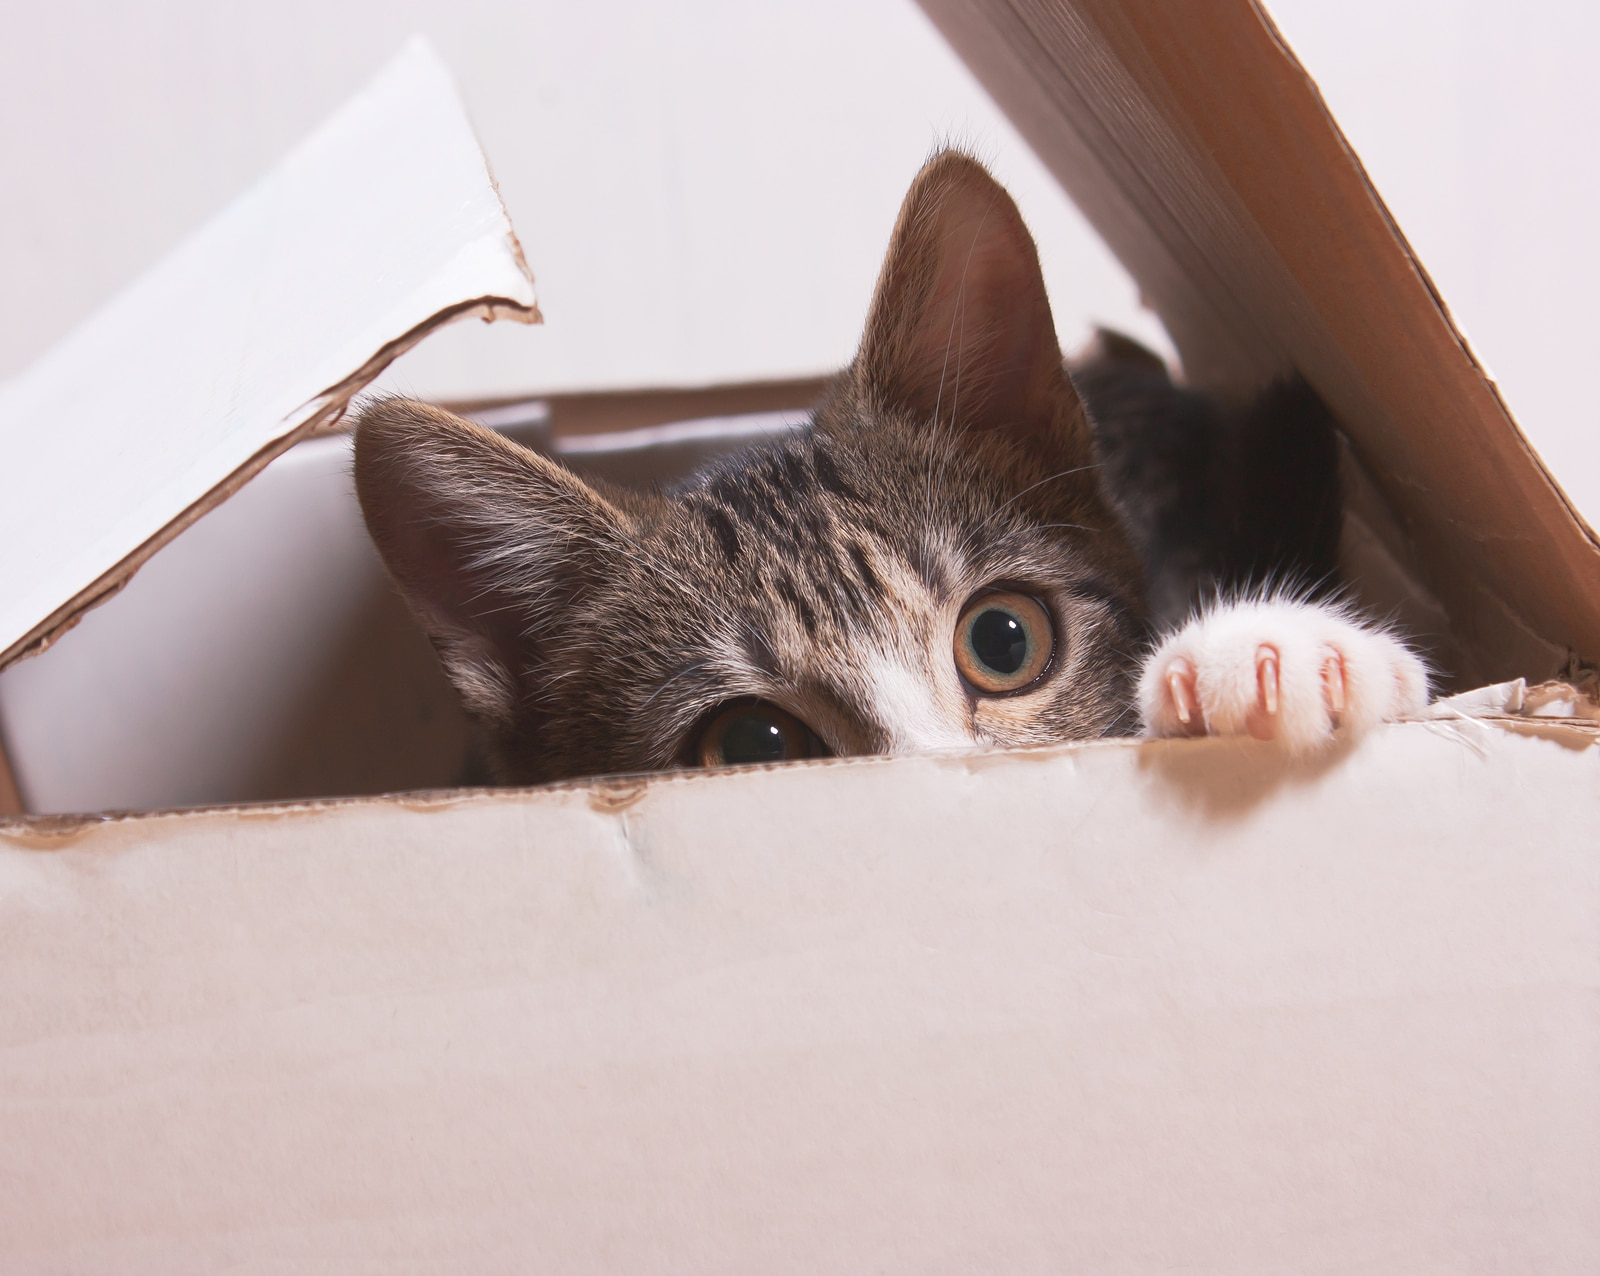 Kitten peering out of a white cardboard box.